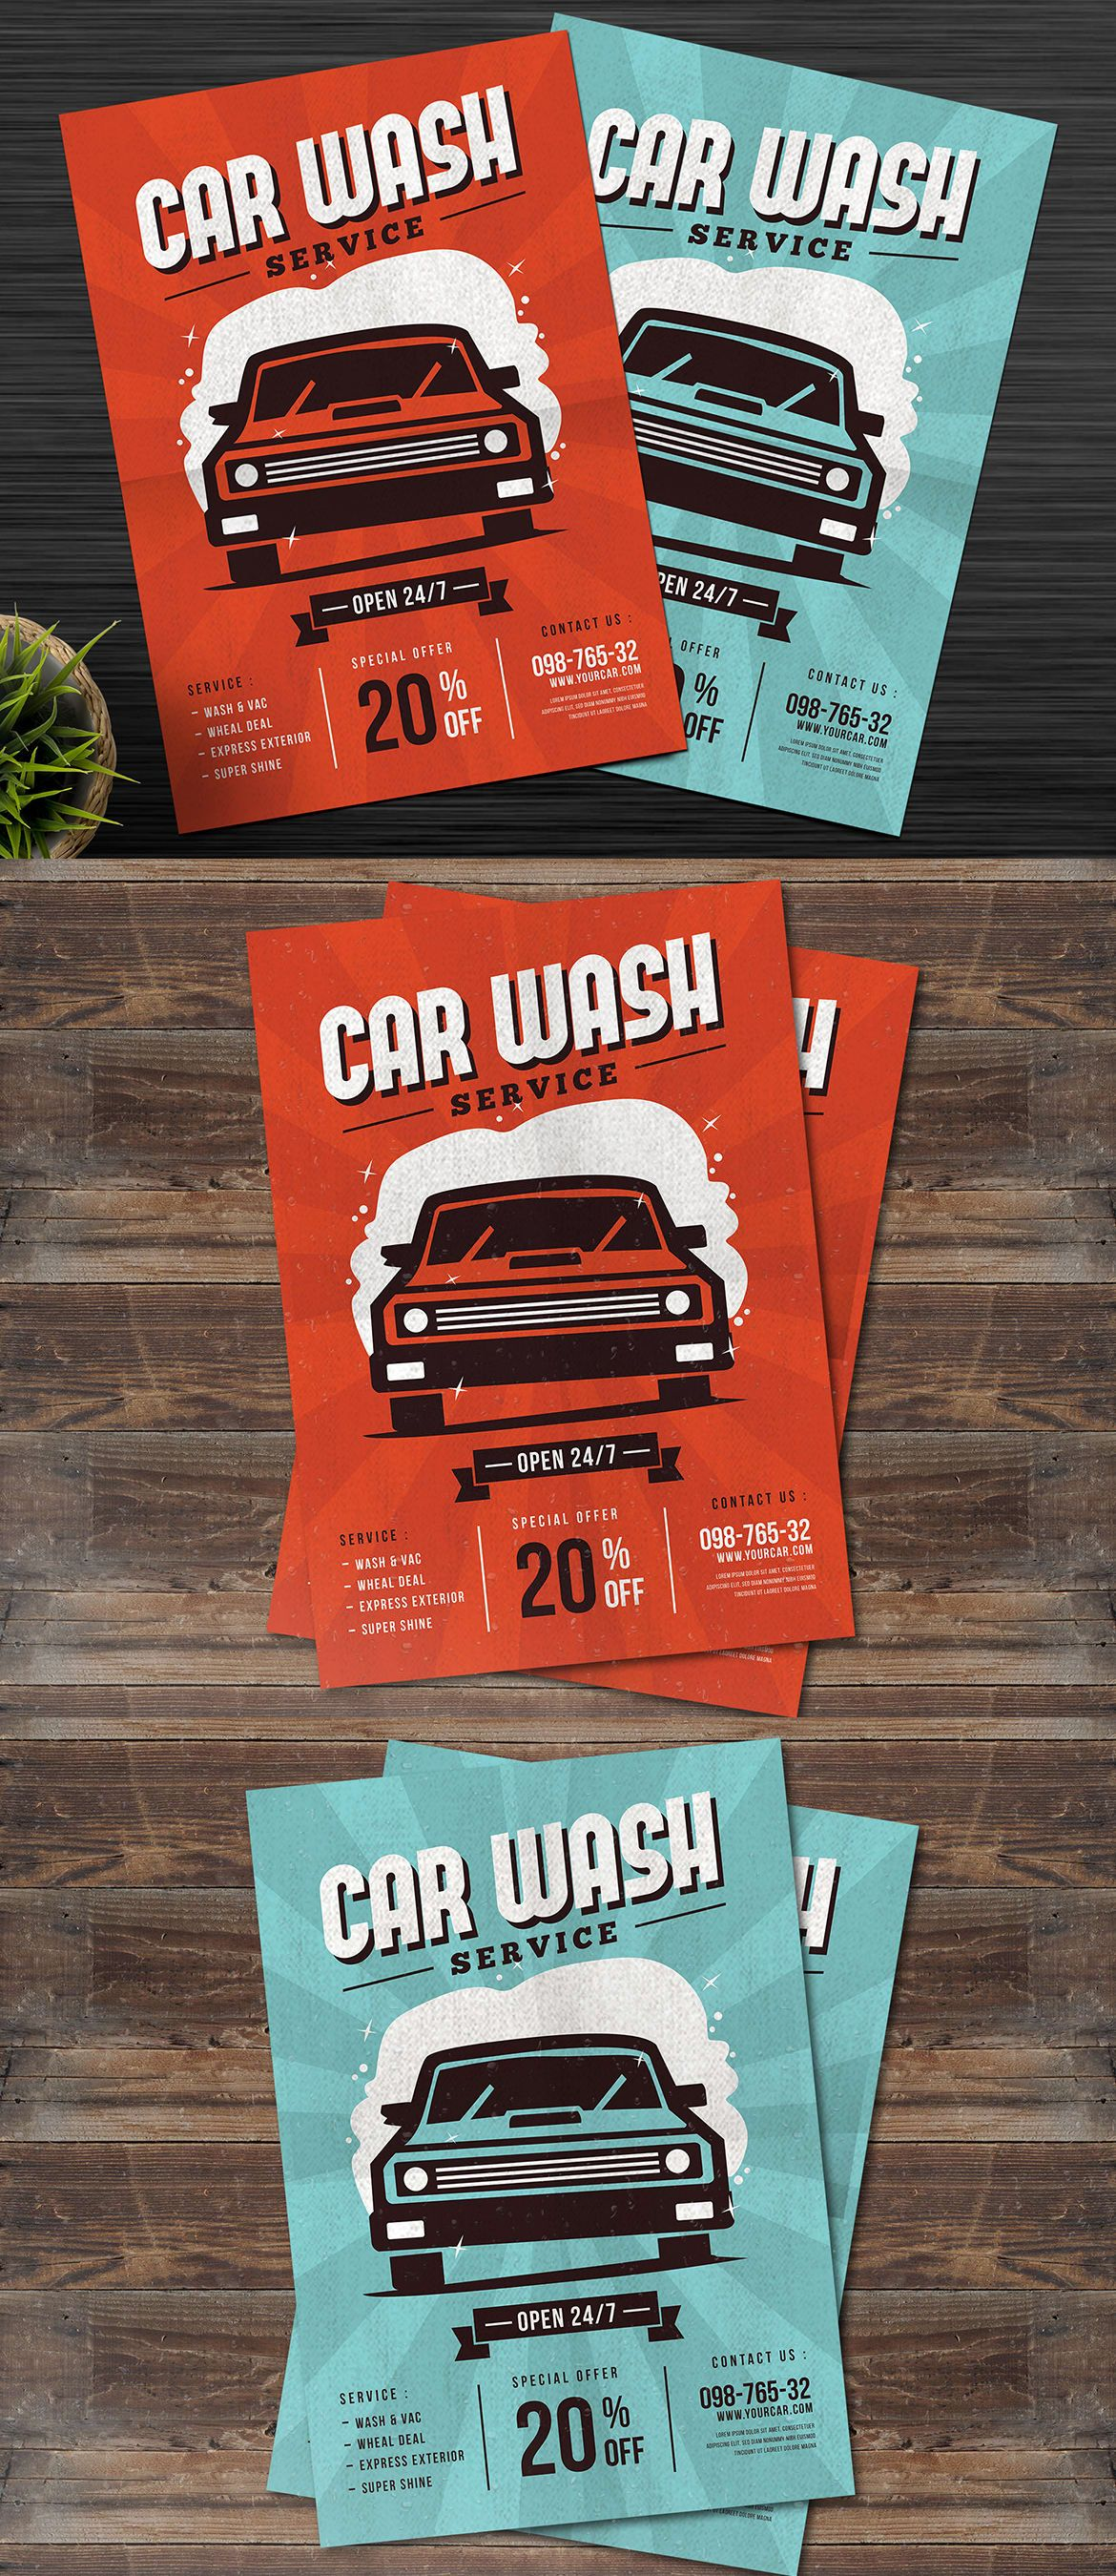 Car Wash Service Flyer Template AI, PSD | lavado de autos ...